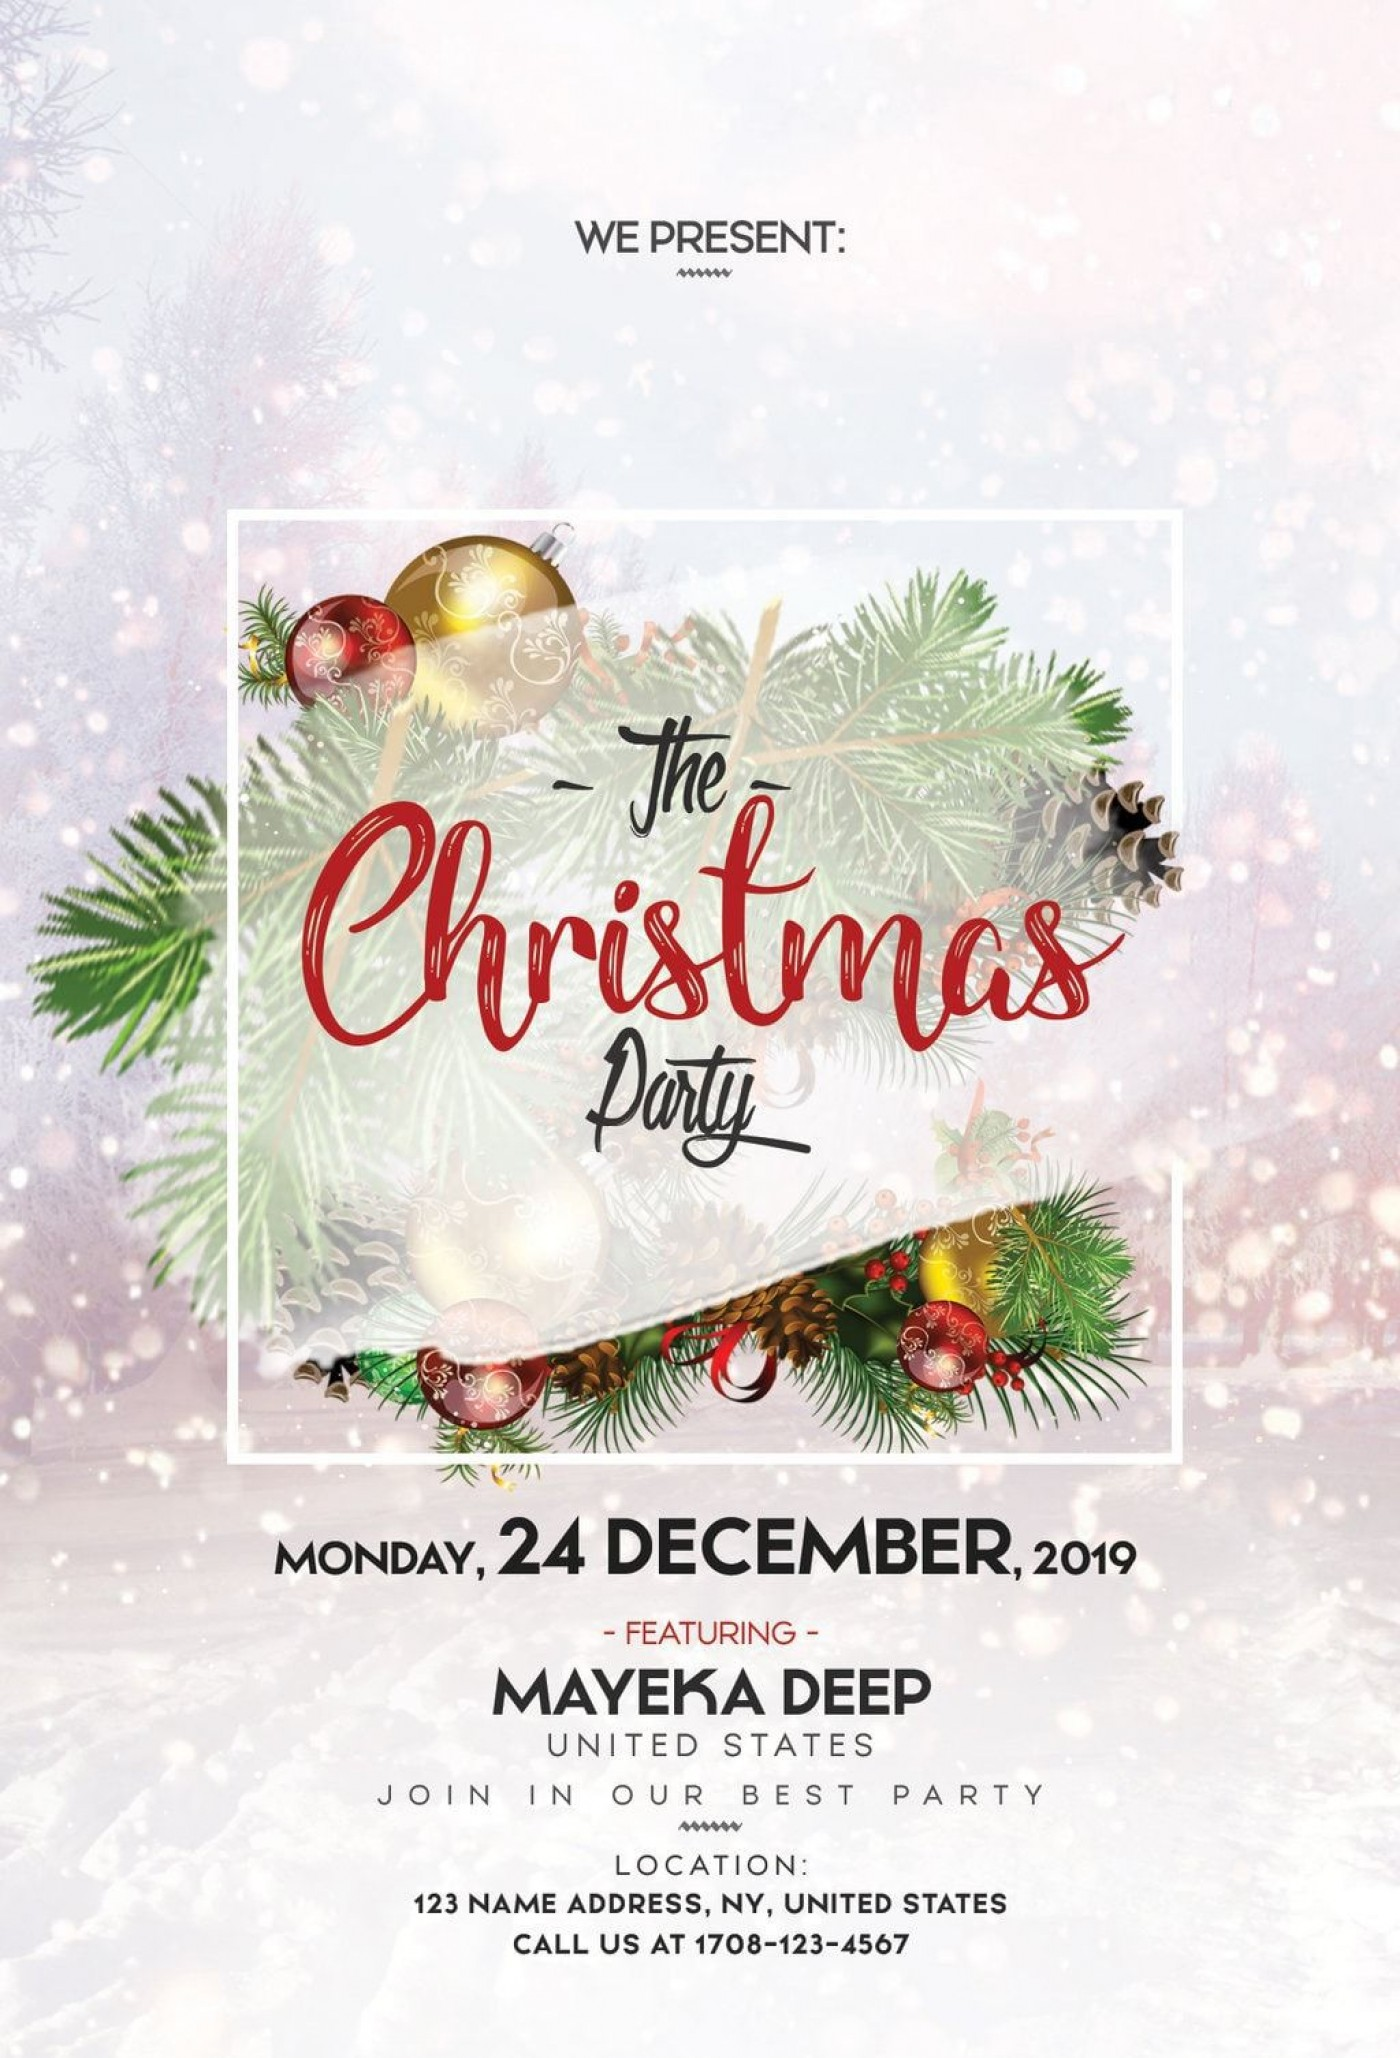 004 Staggering Free Christma Poster Template High Def  Uk Party Download Fair1400